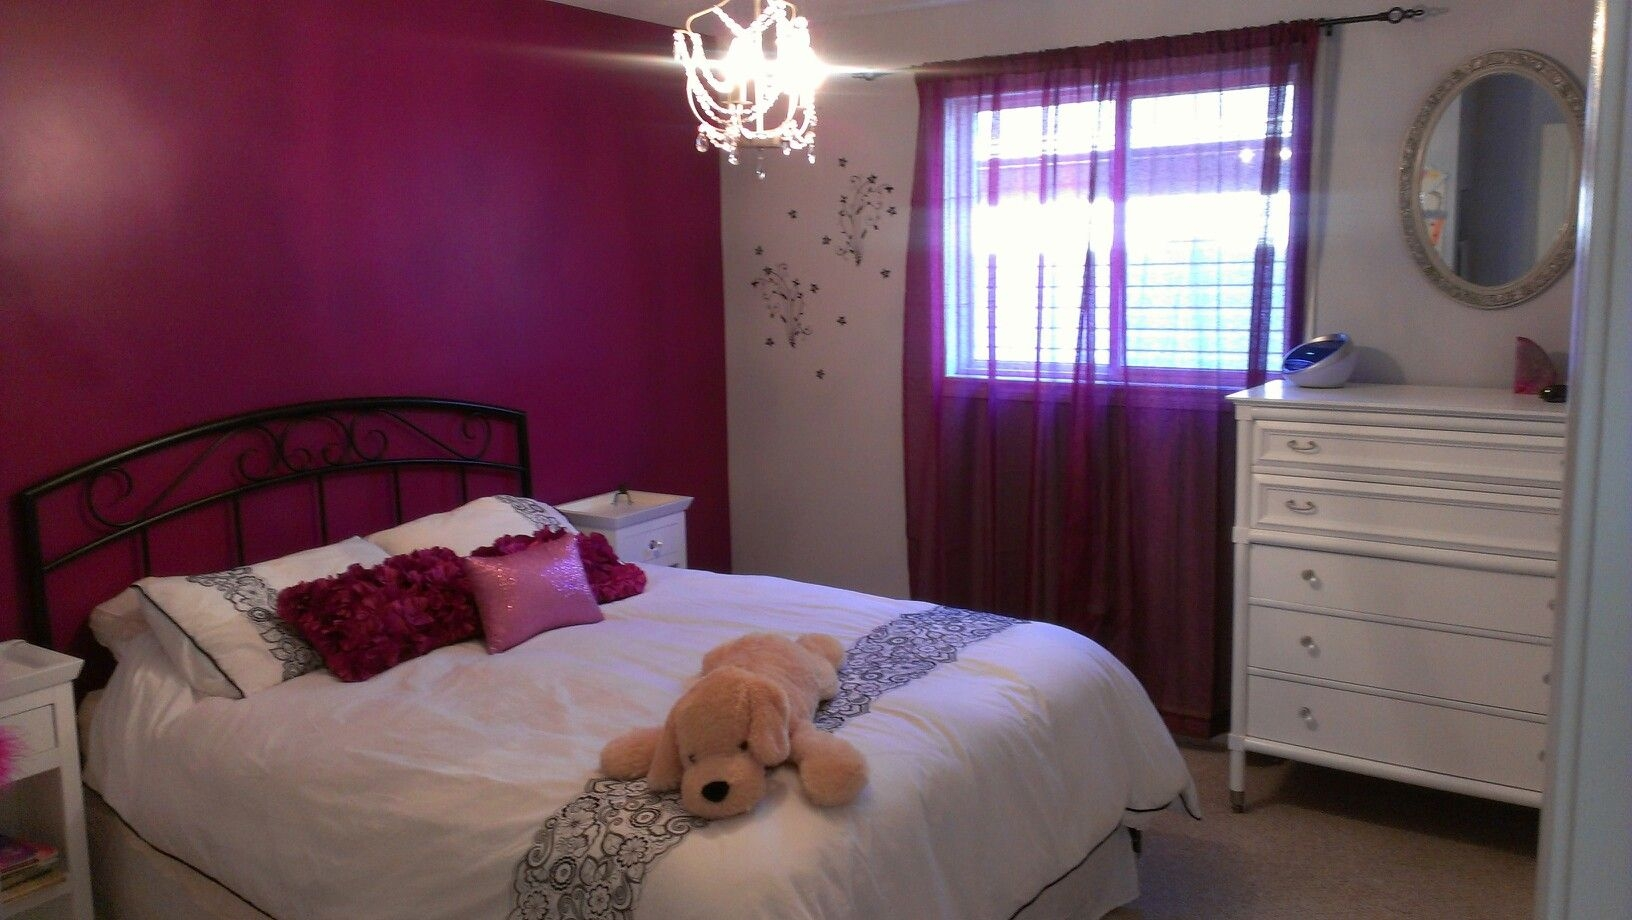 Bedroom makeover for a 10year old girl  Bedroom